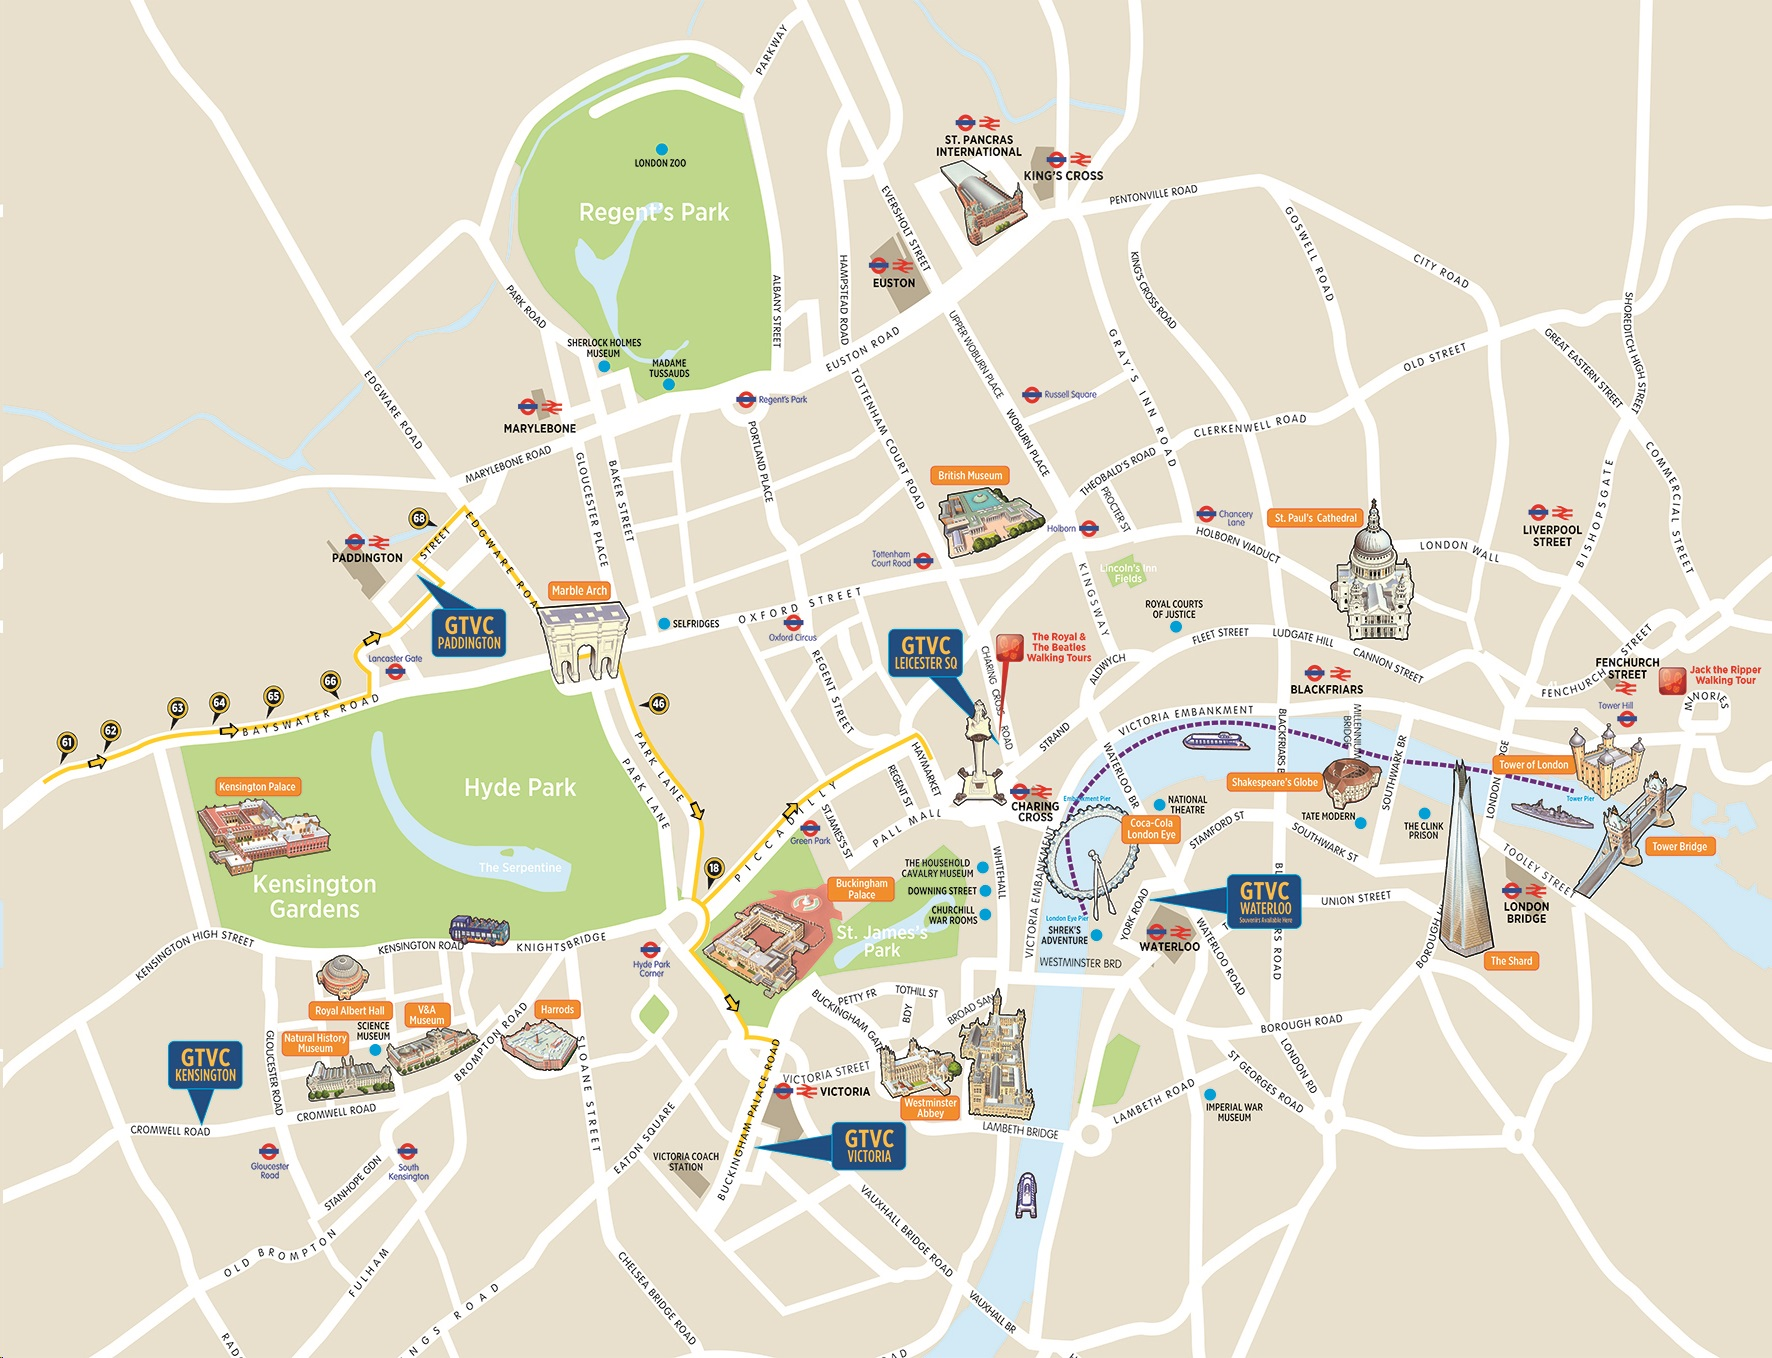 Map Of London With Sights.London Bus Tours Routes Maps Hop On Hop Off Plus